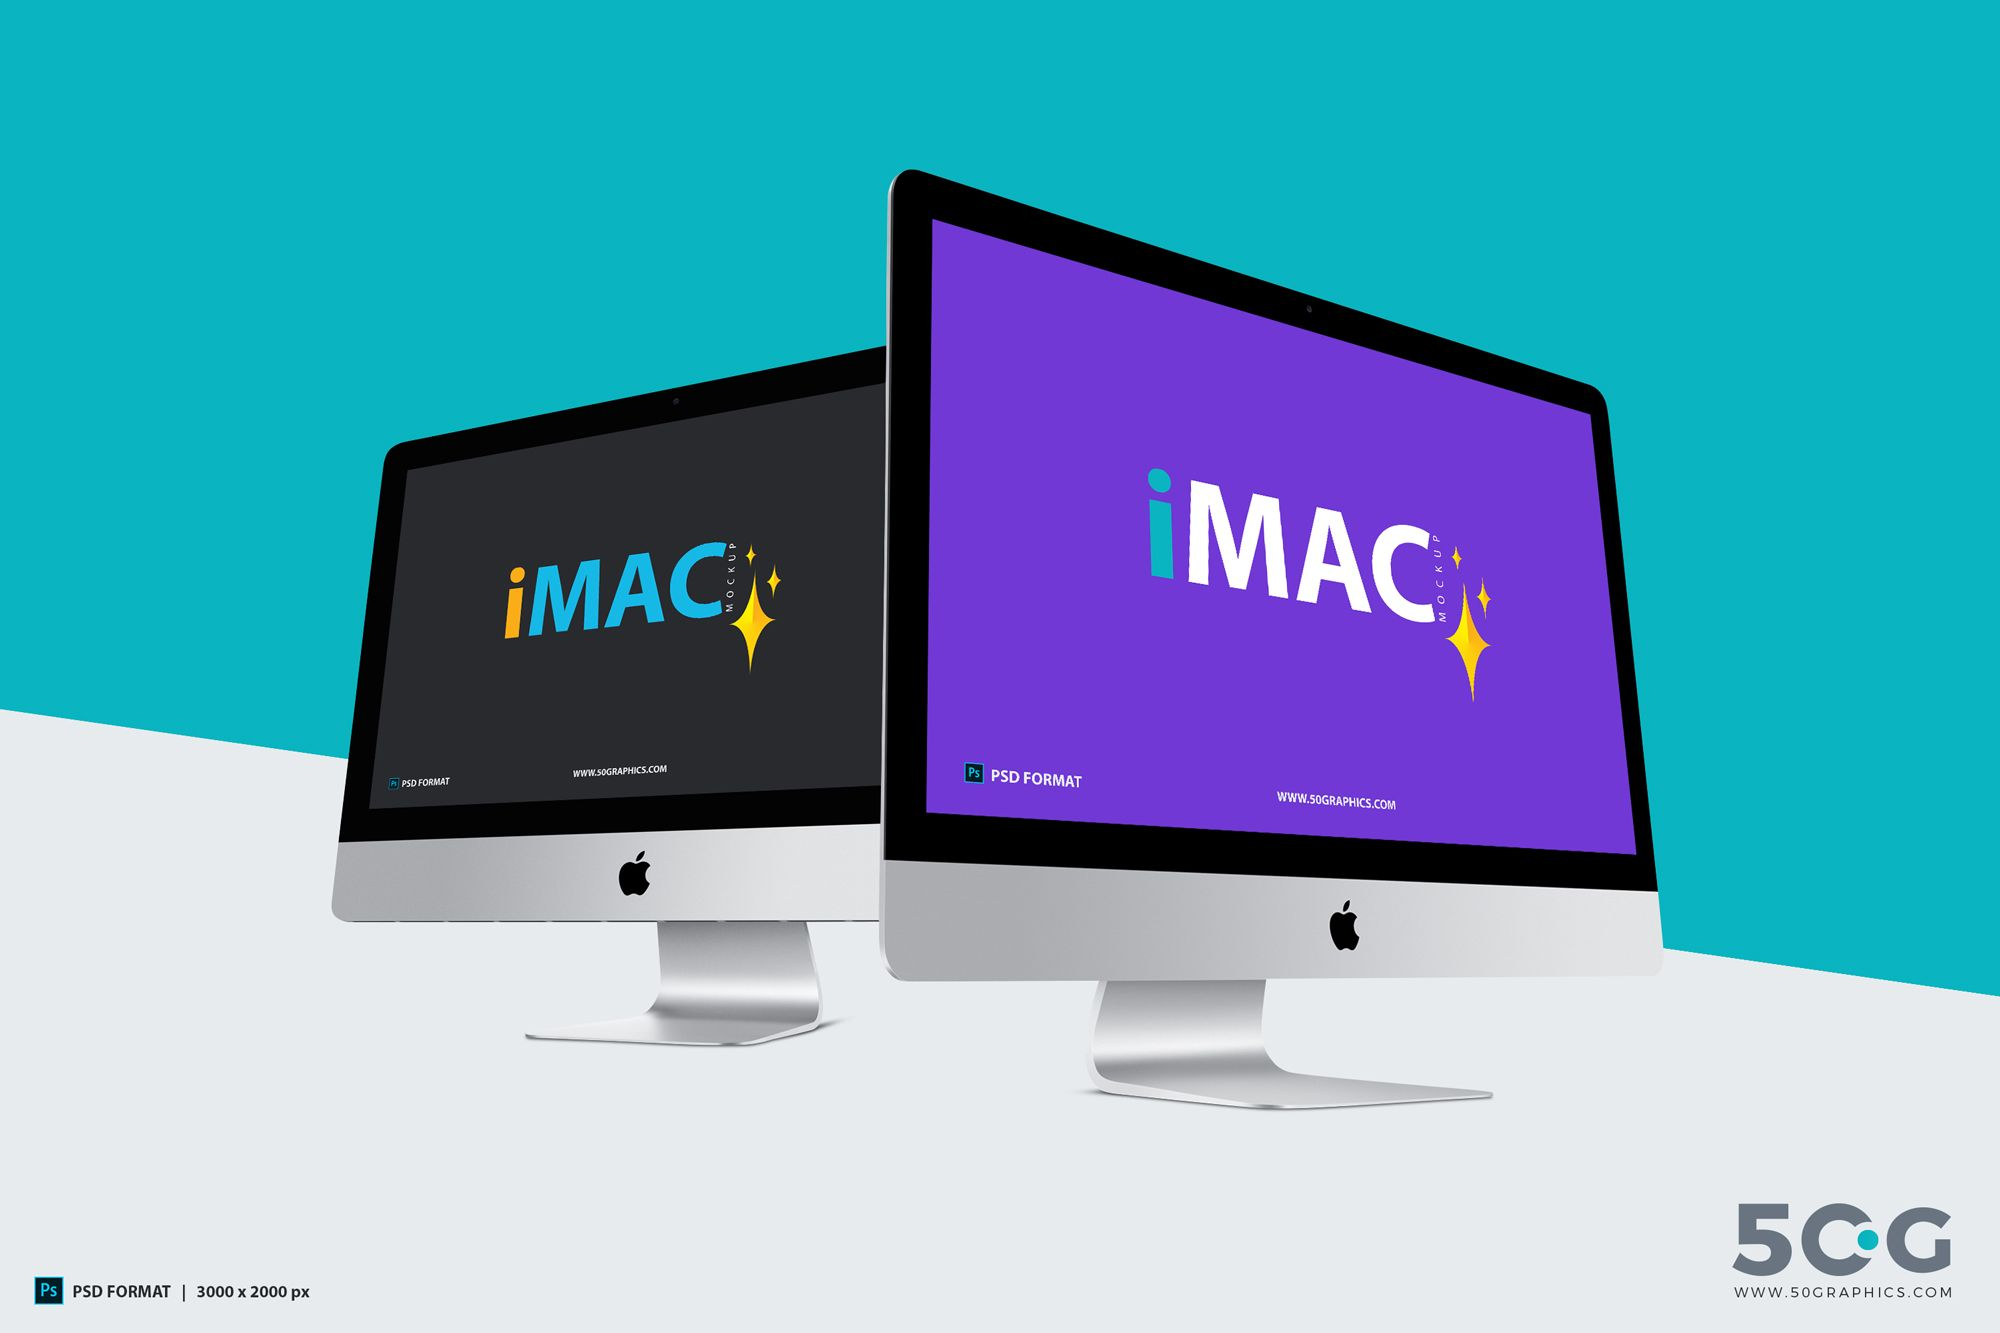 Free Imac Mockup With Two Different Perspective Imac Macbook Pro For Sale Ipad Wifi